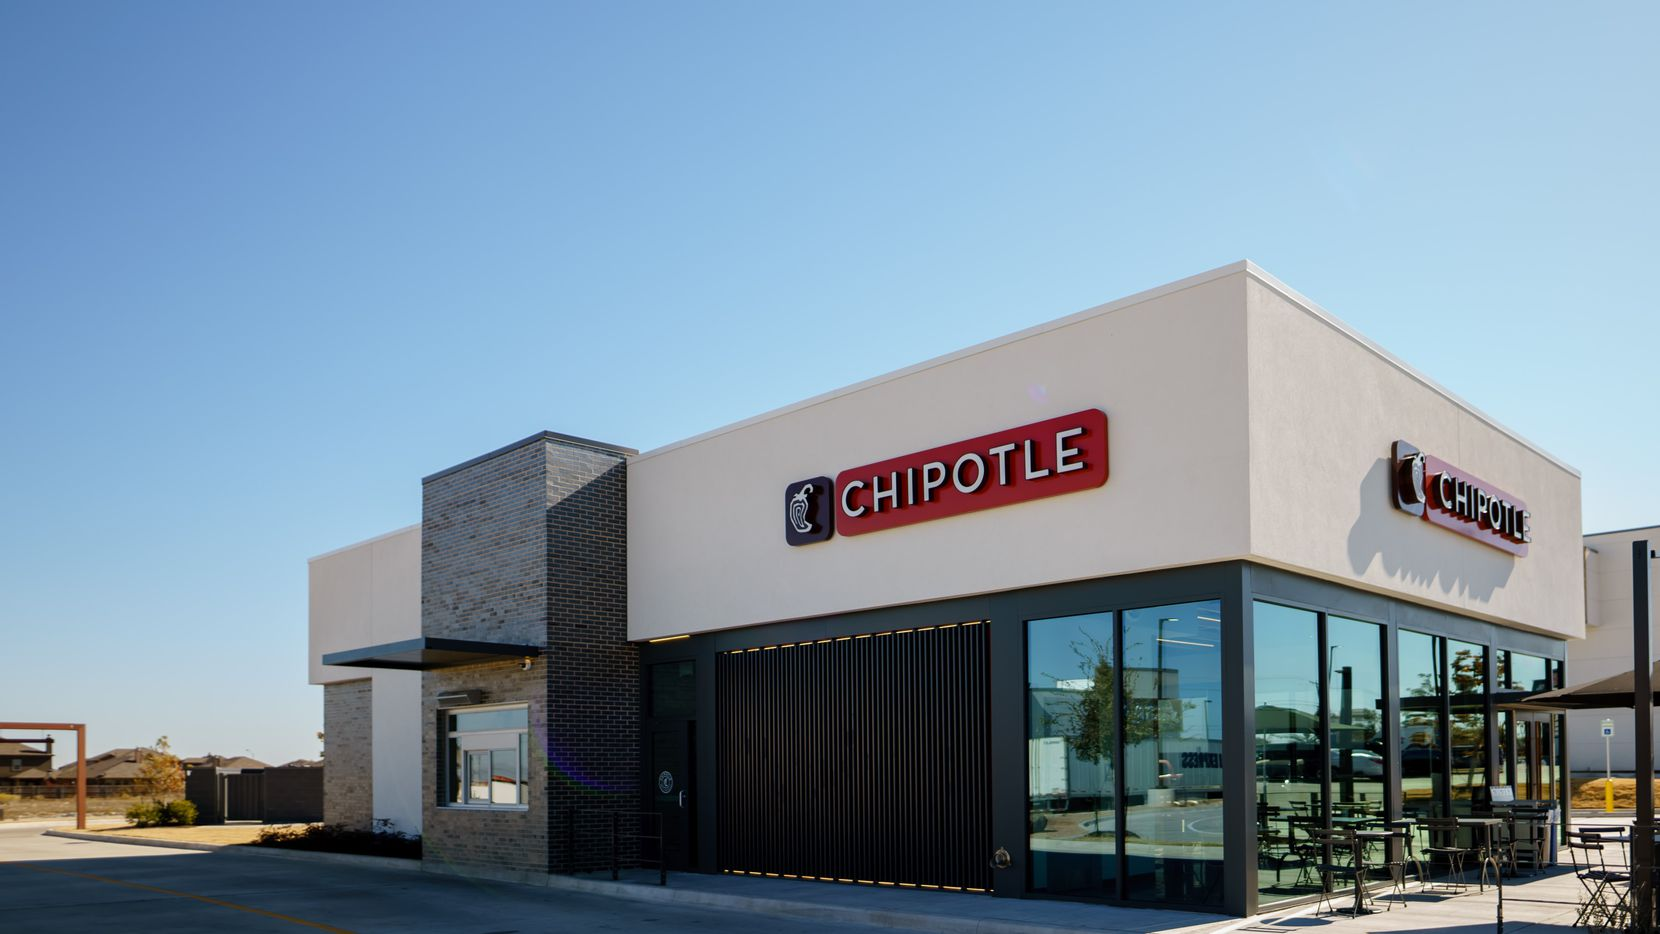 The new Chipotle location in McKinney features a drive-through.